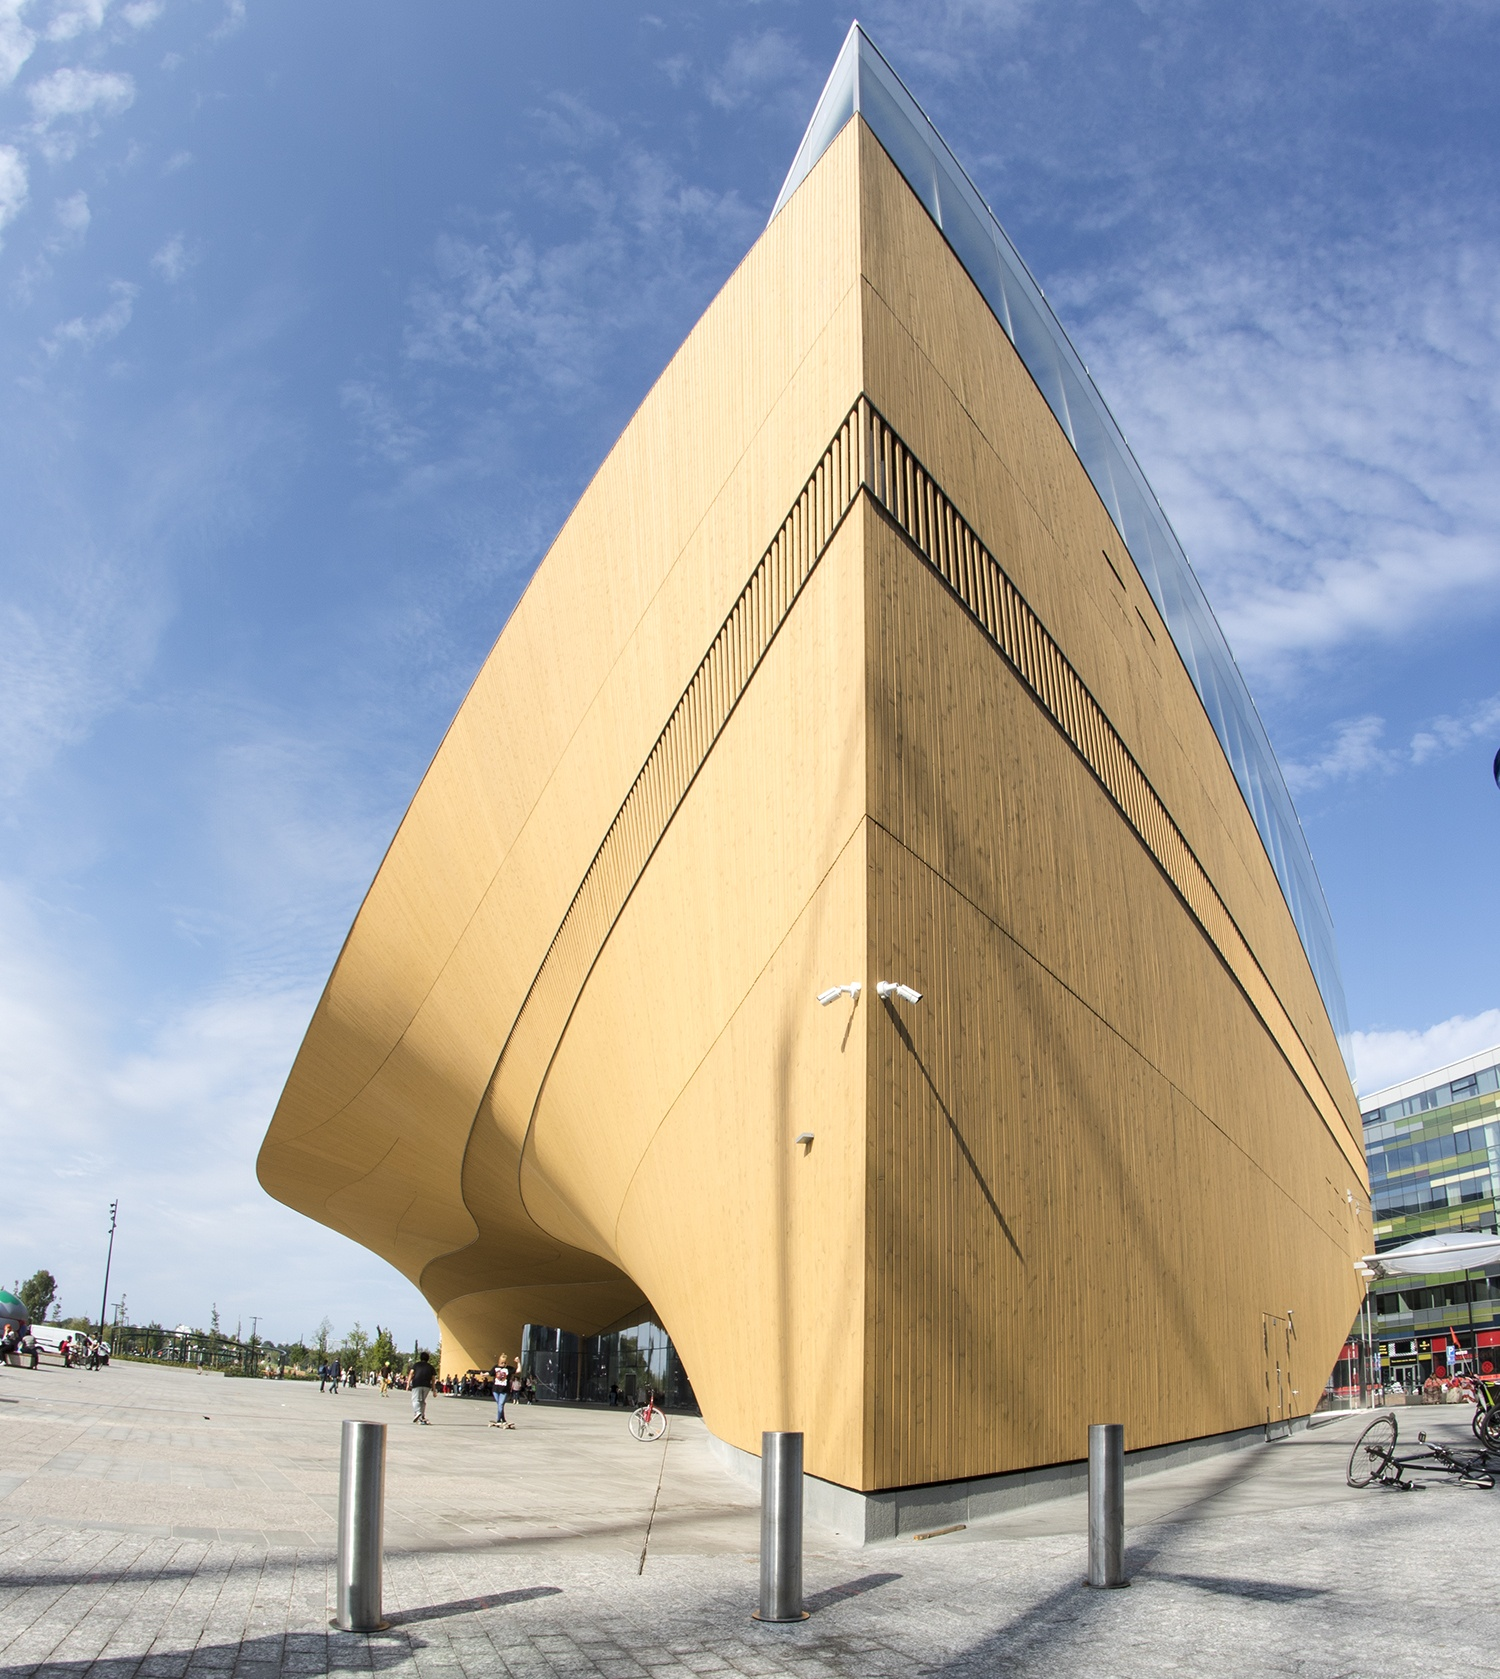 The Oodi library of Helsinki